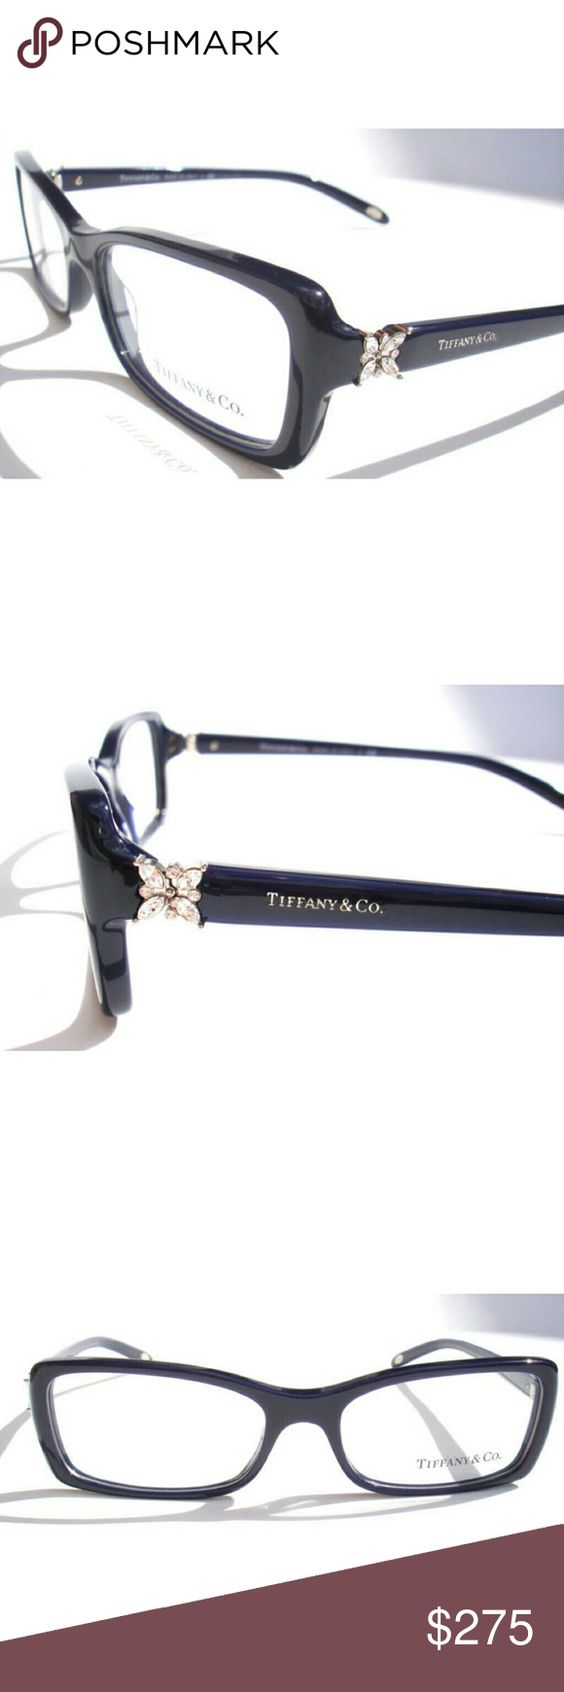 Tiffany & CO Eyeglasses Authentic  Tiffany & Co Eyeglasses  Dark blue frame  Size 53-16-140 Includes original case only Tiffany & Co. Accessories Glasses